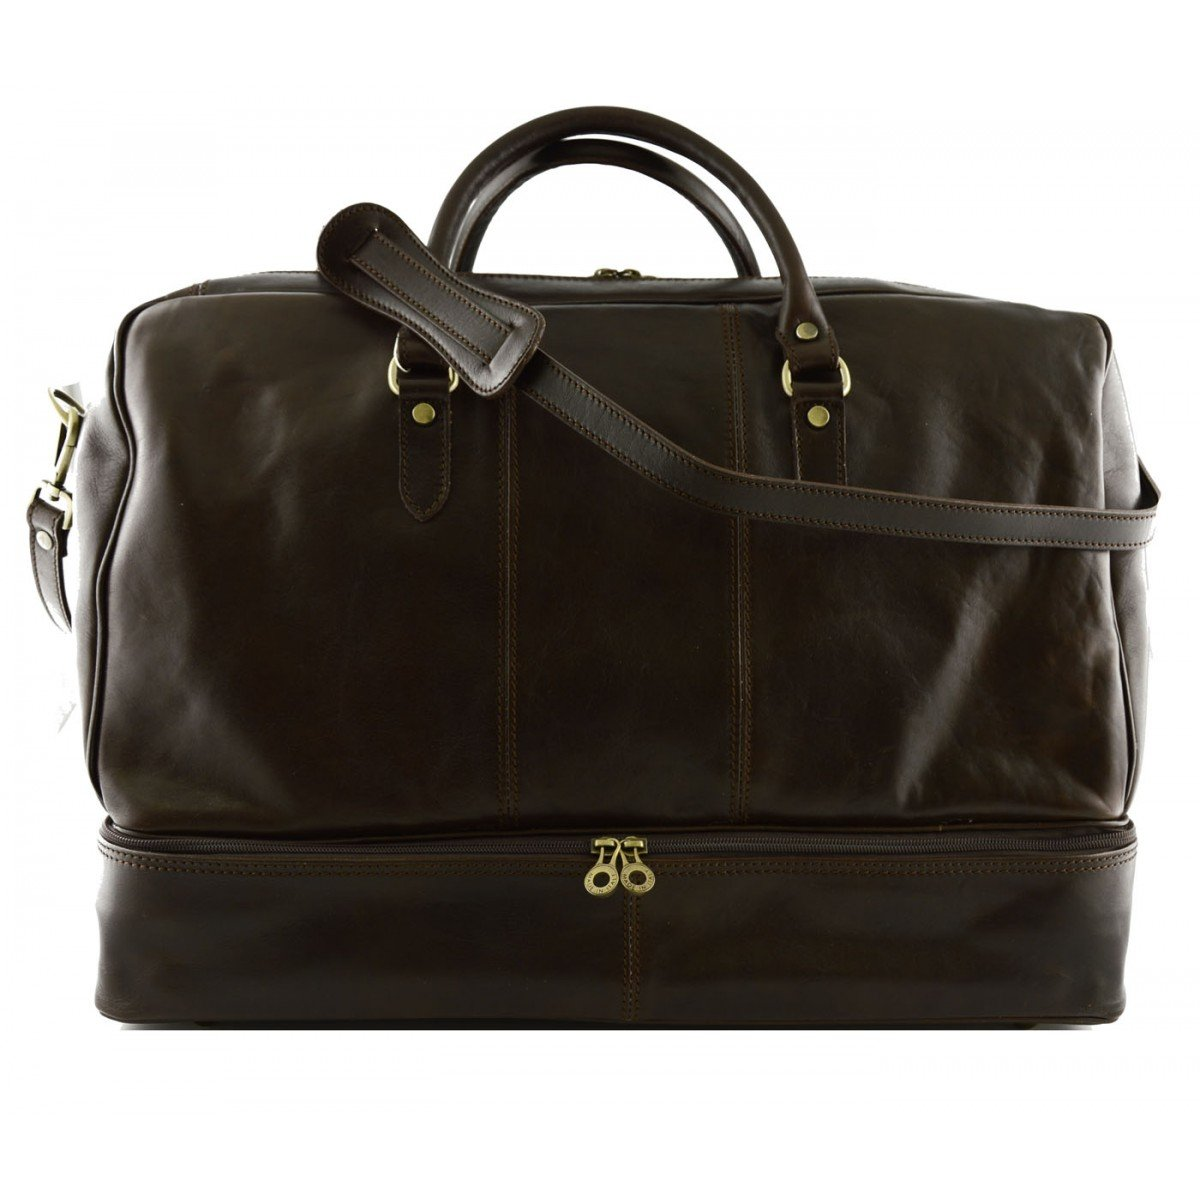 Made In Italy Genuine Leather Travel Bag Color Dark Brown - Travel Bag B01N7ZBV6D